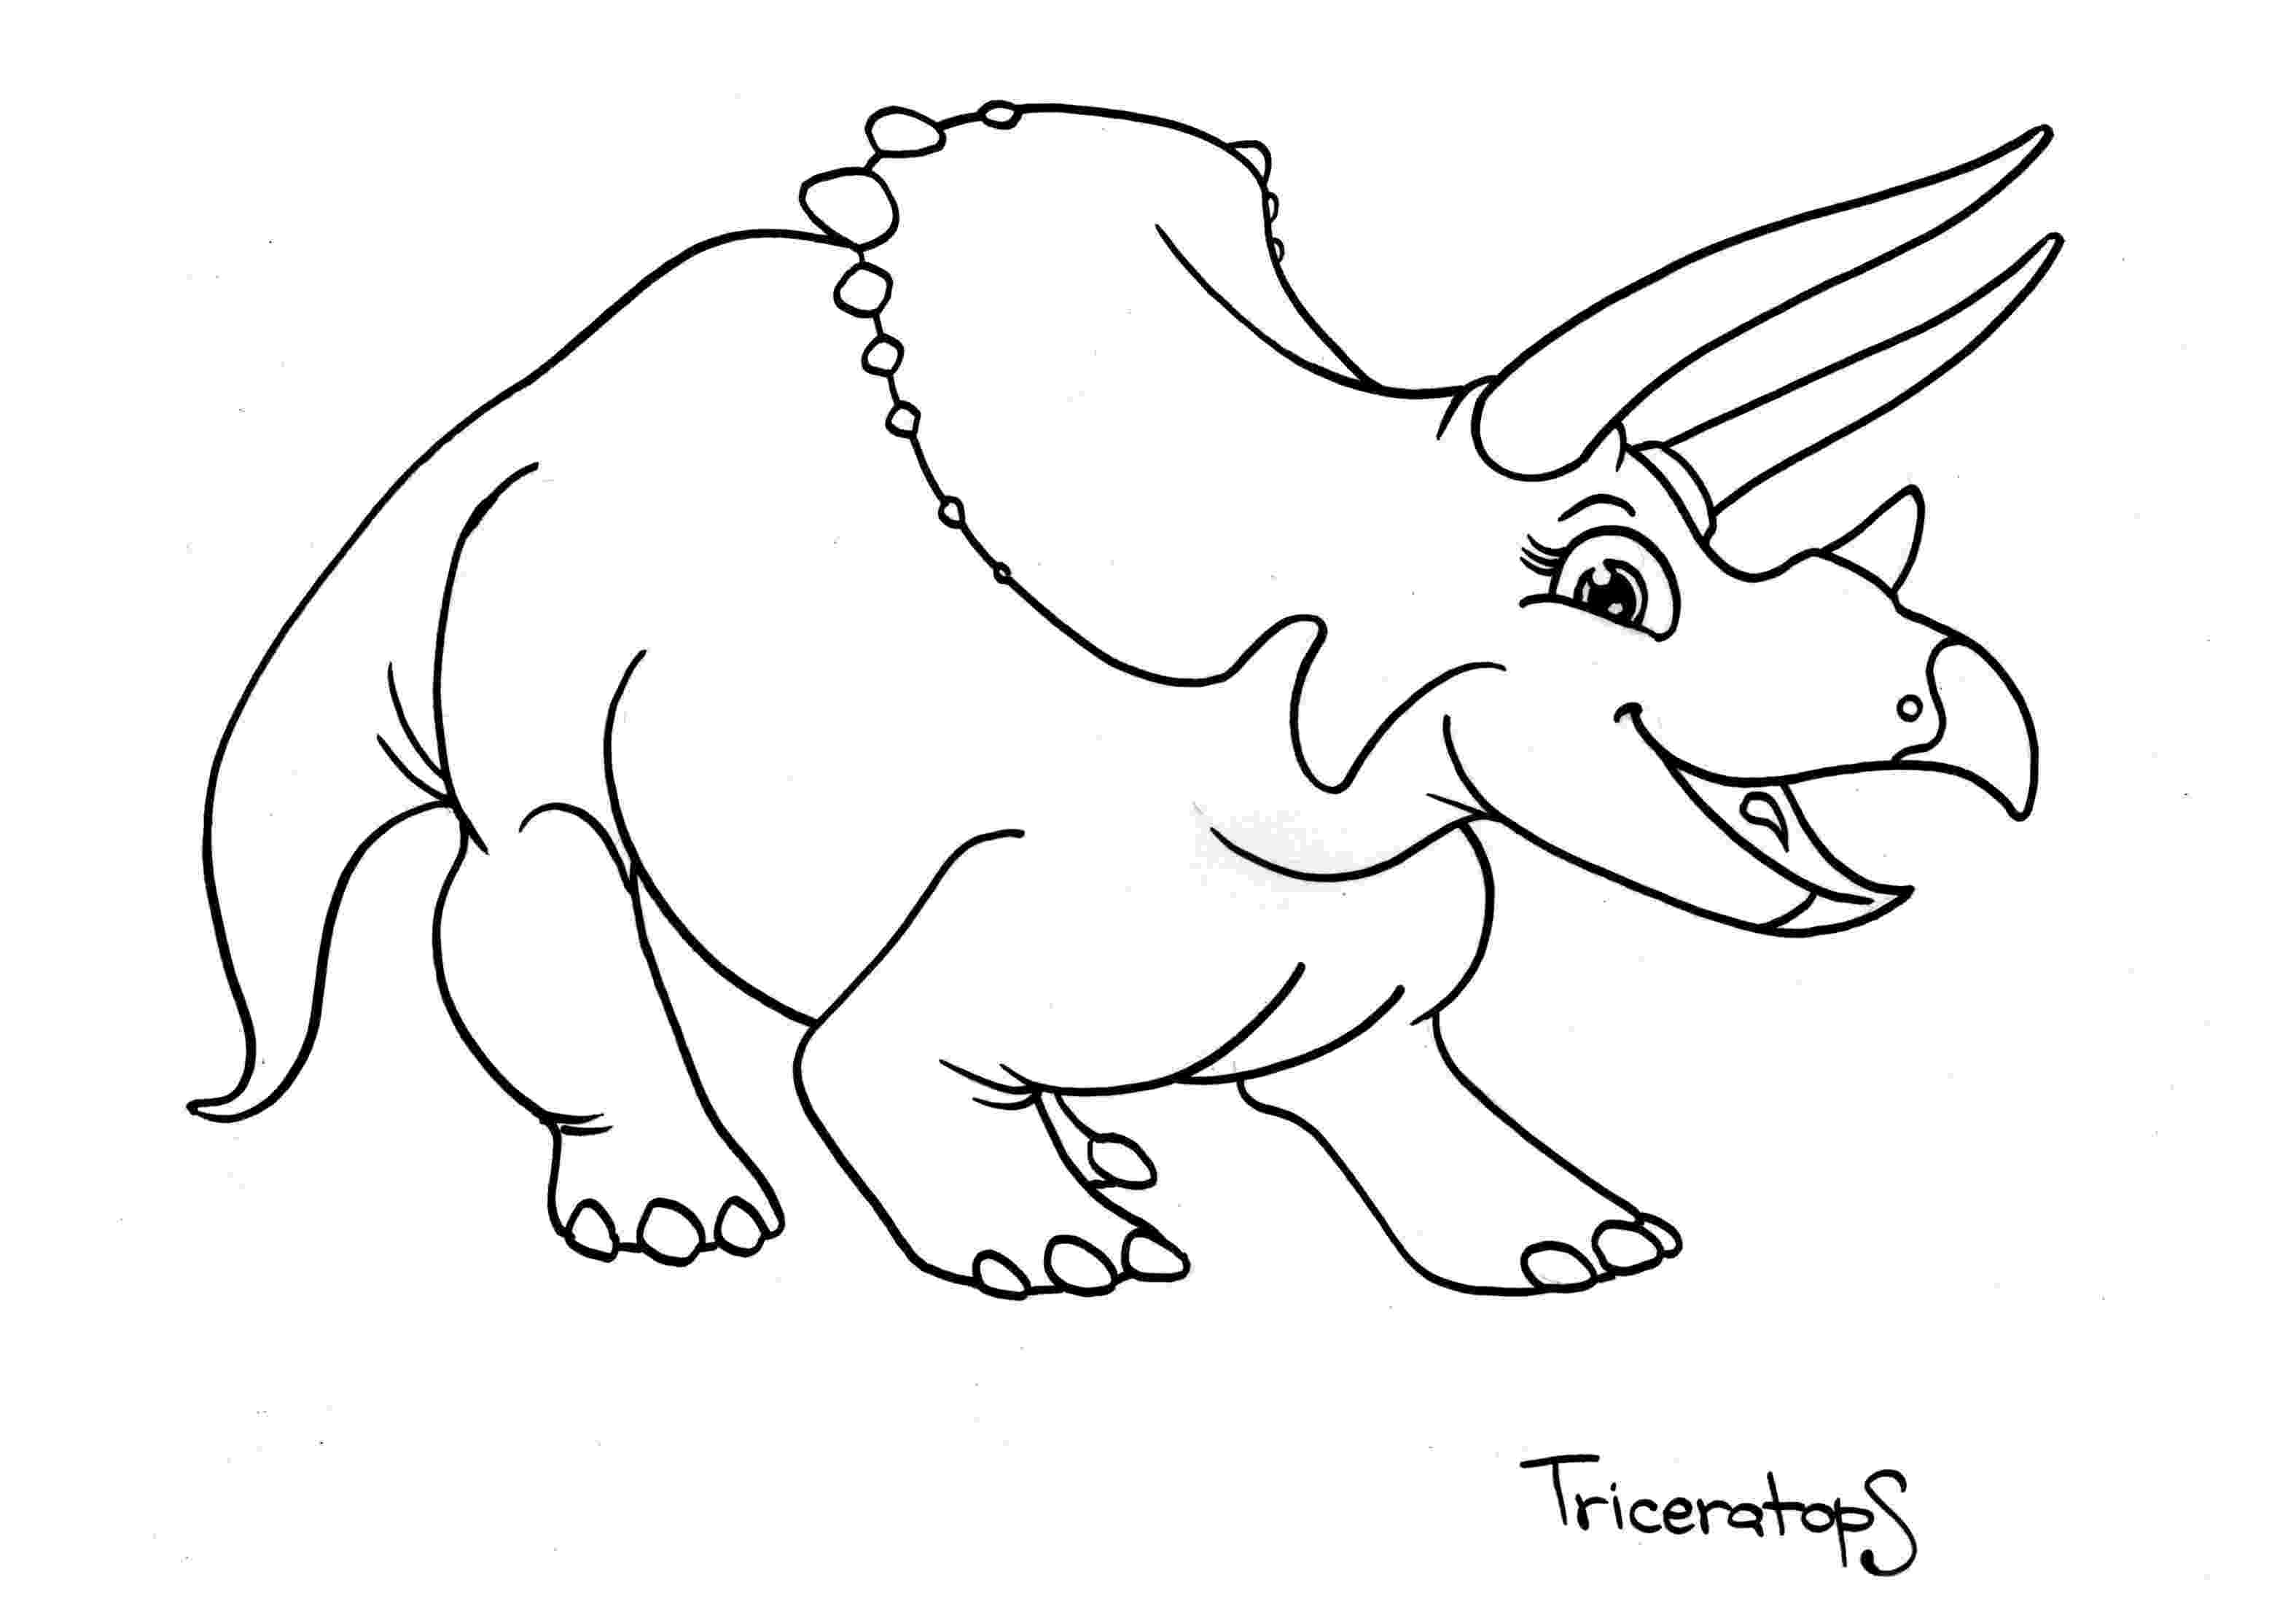 dinosaurs for coloring coloring pages images dinosaurs pictures and facts page coloring for dinosaurs